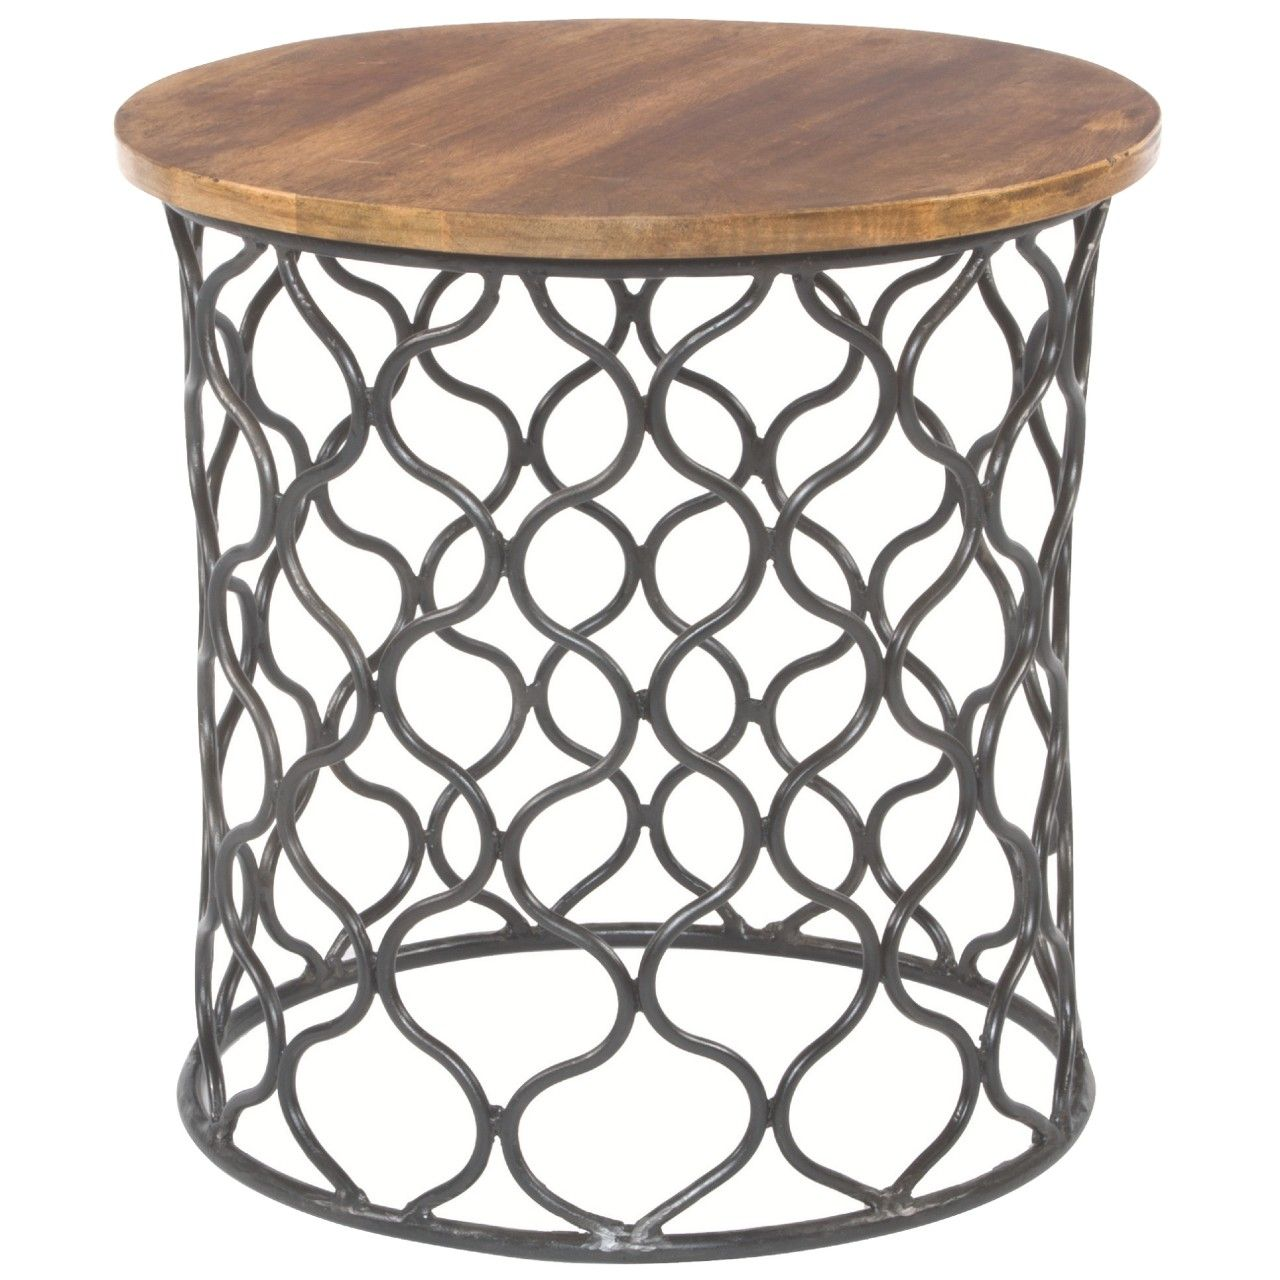 cage accent table toms home furnishings wish list for clarissa metal tiny skinny glass tiffany stained lamp sage coffee brass ship lights windham door cabinet gray styling white